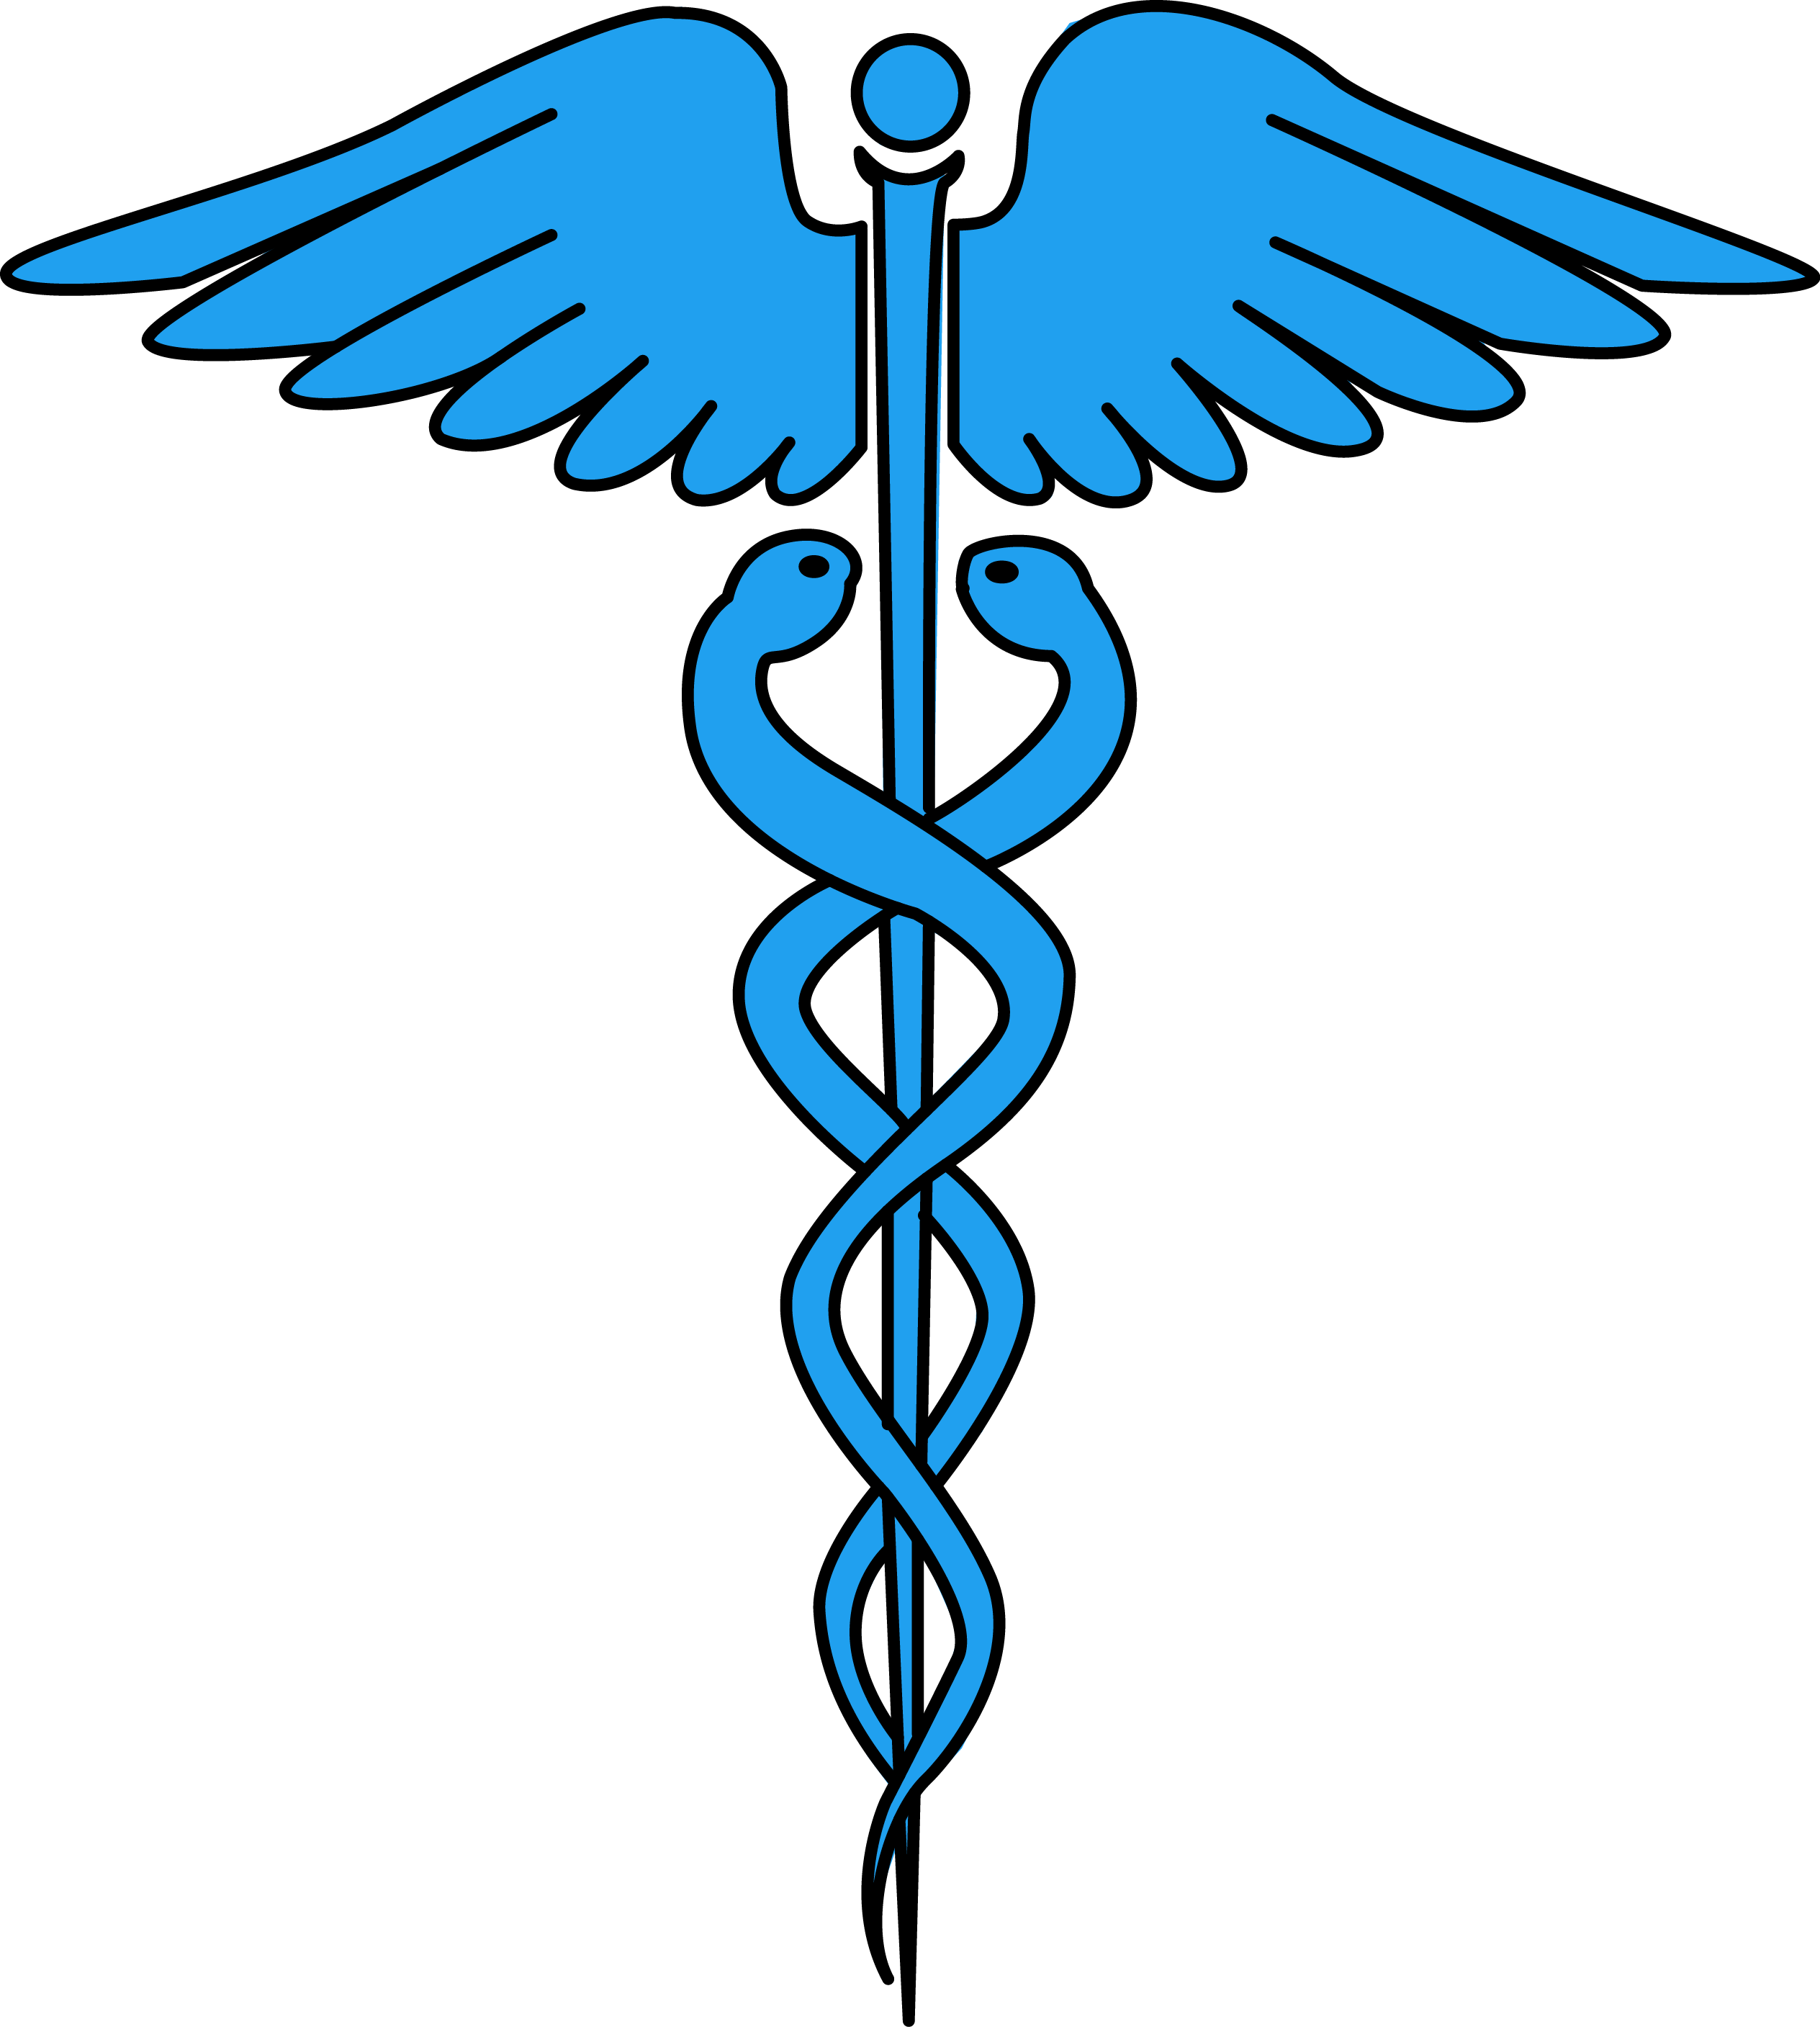 Clipart medical symbol graphic free download Image for free caduceus medical symbol health high resolution clip ... graphic free download